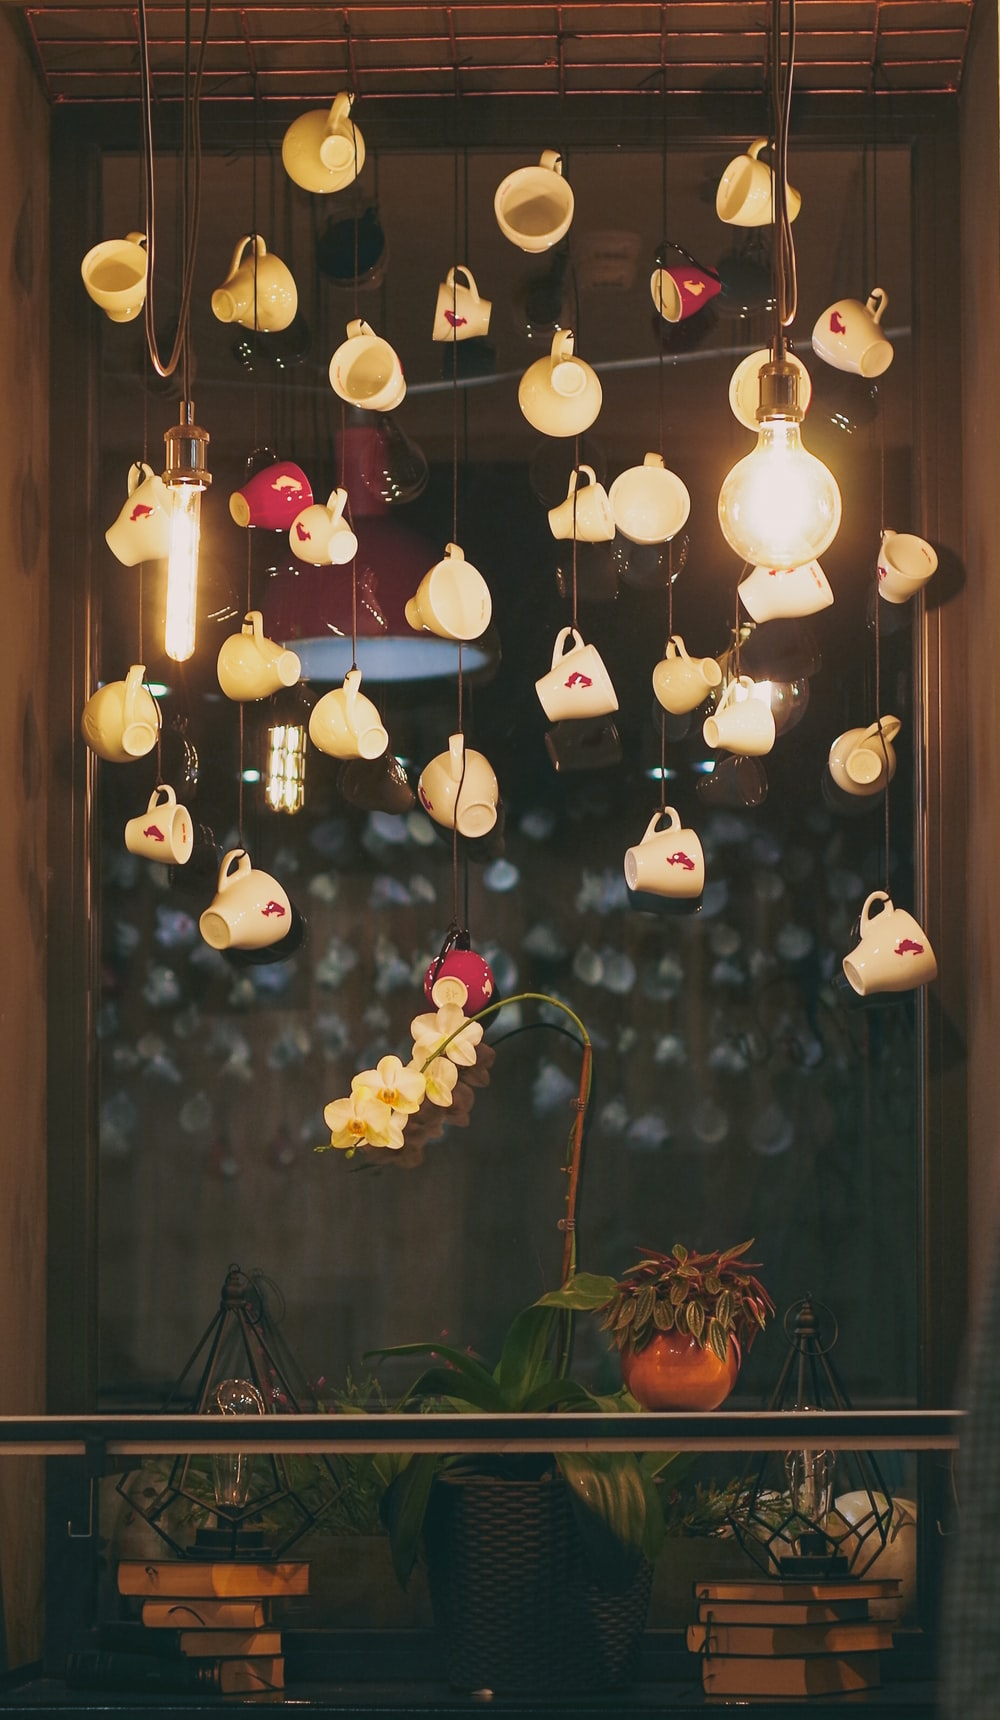 white ceramic teacups hanging from the ceiling